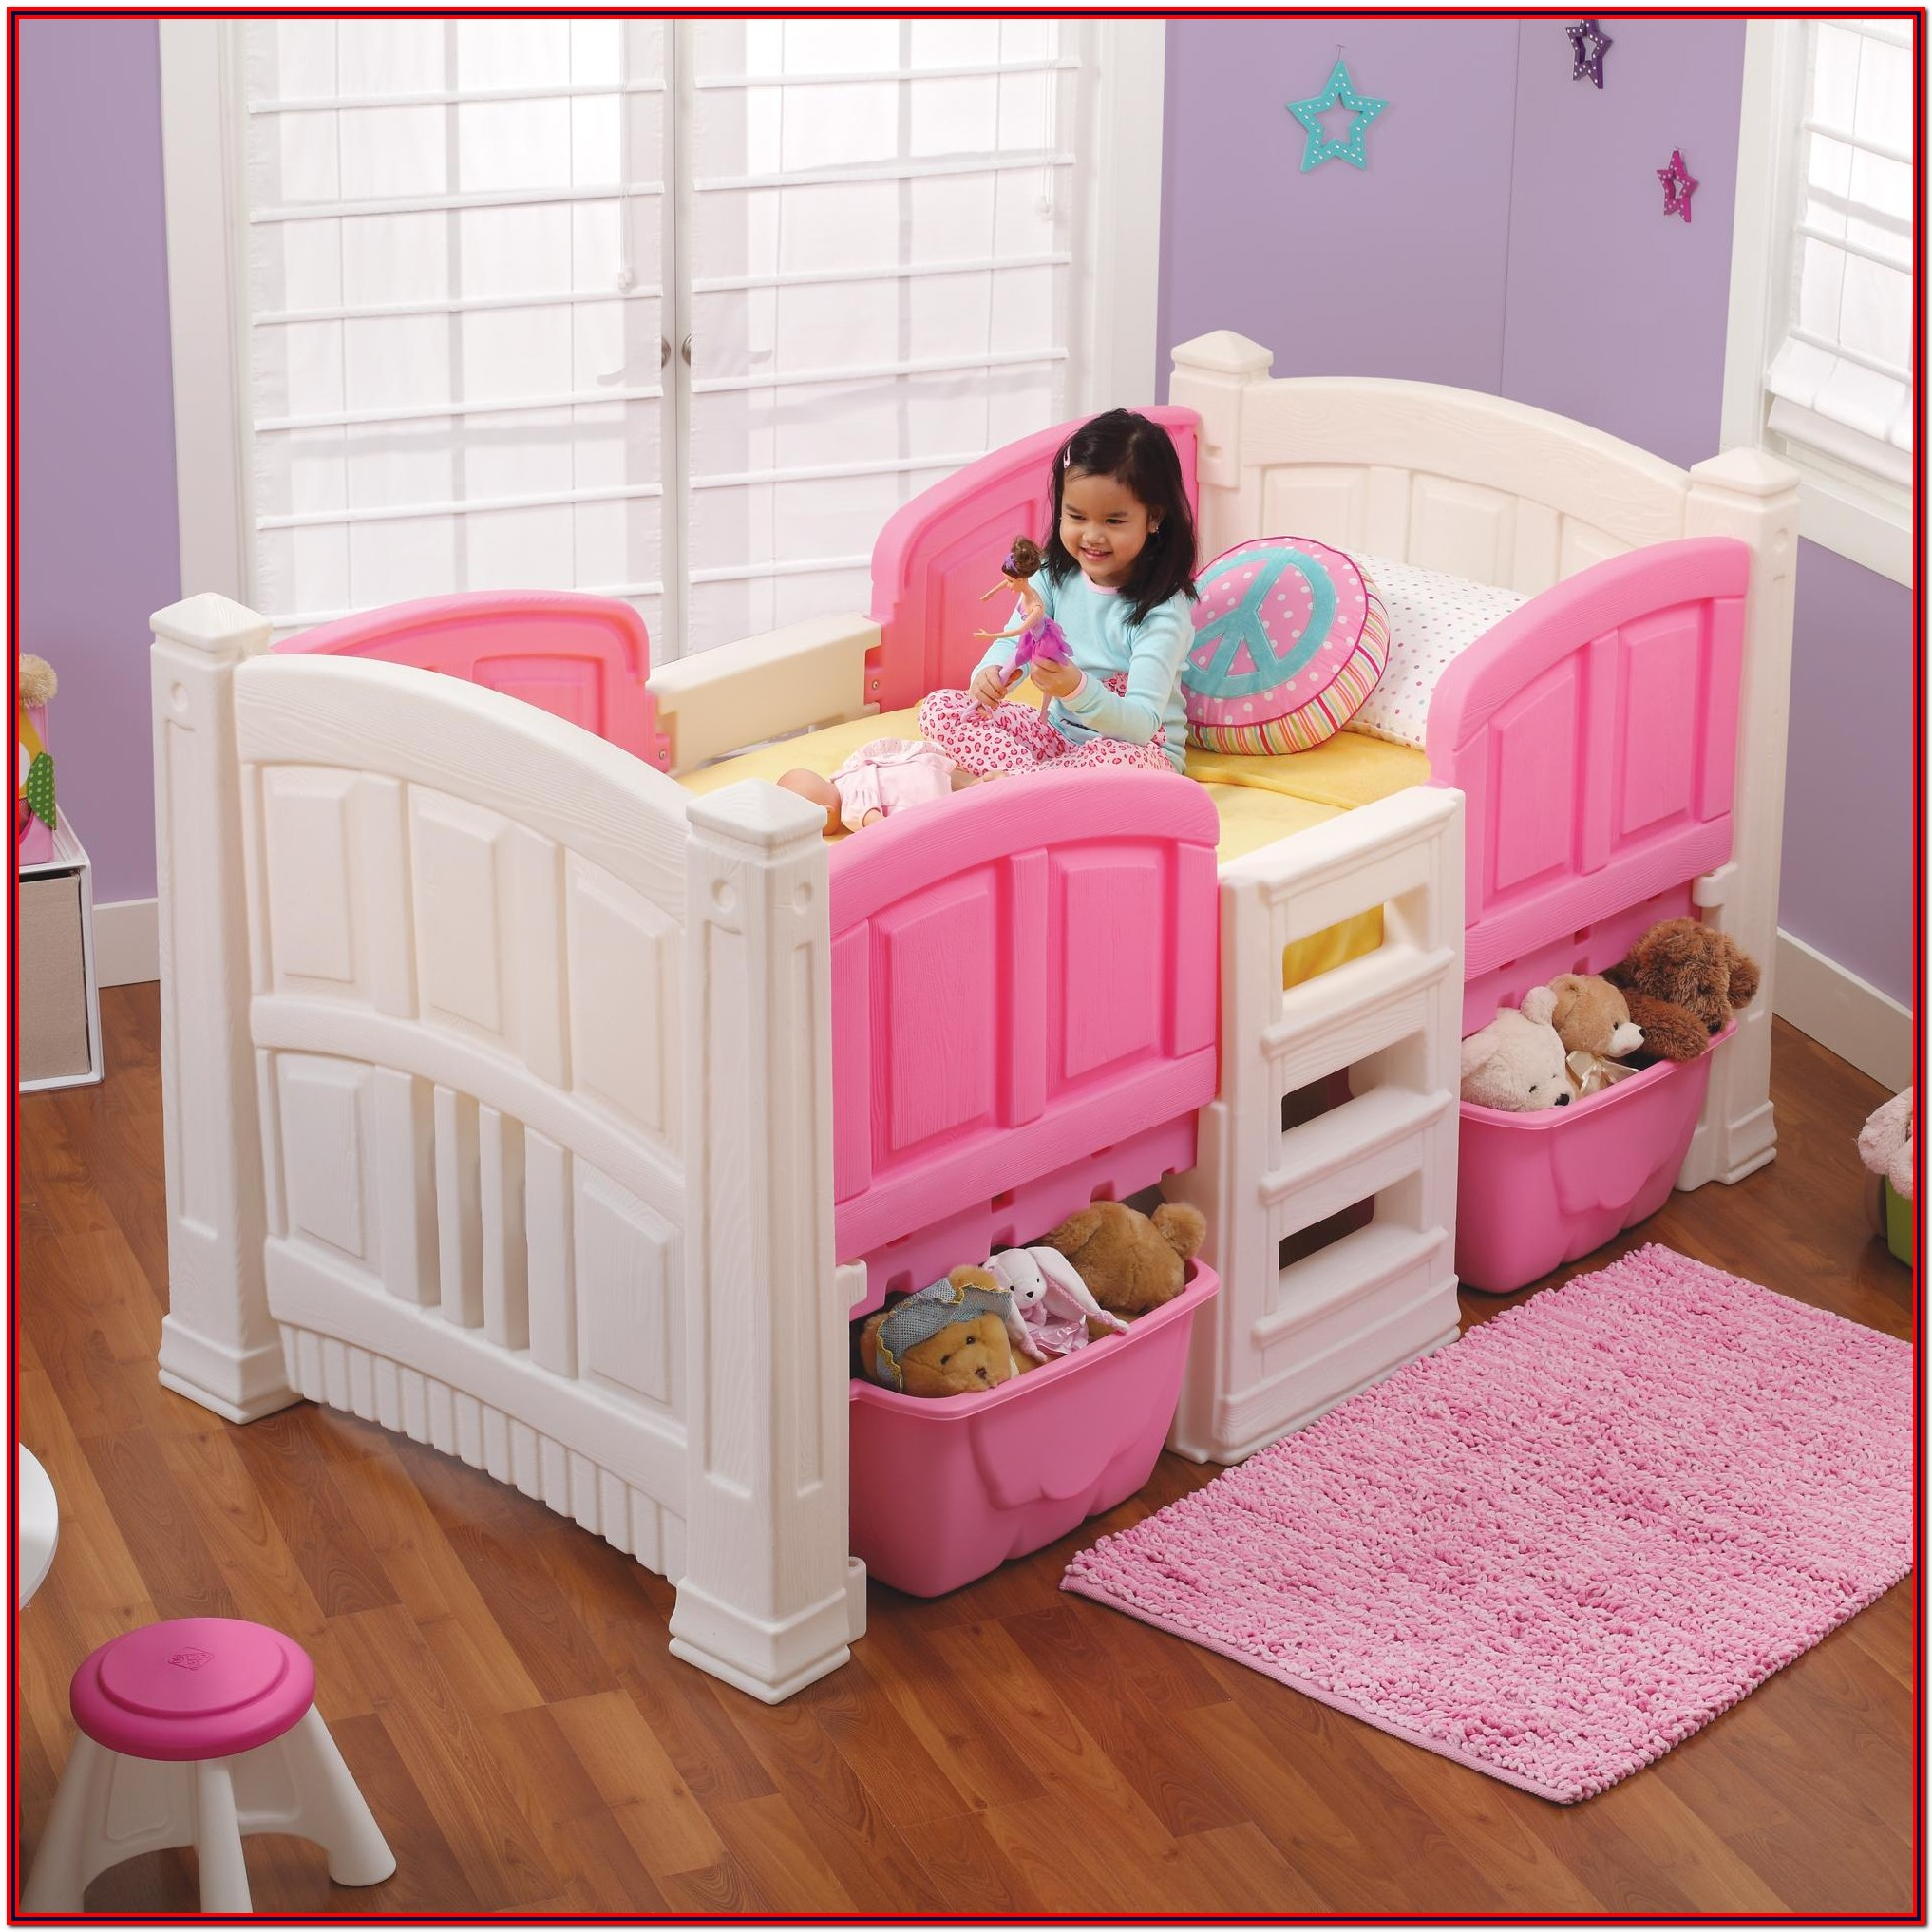 Twin Mattress For Toddler Bed